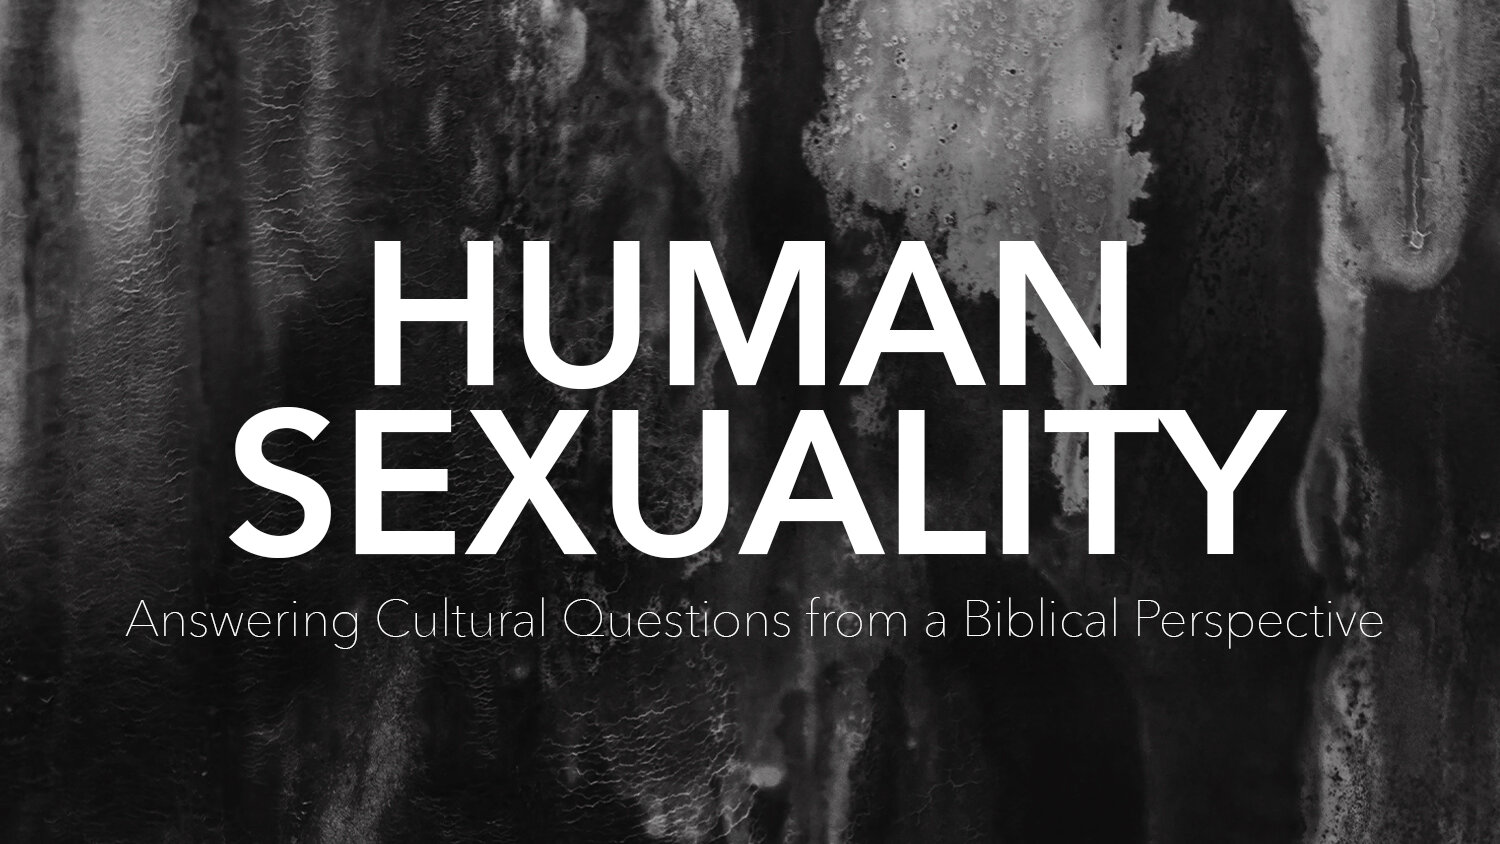 HumanSexuality_Event.jpg